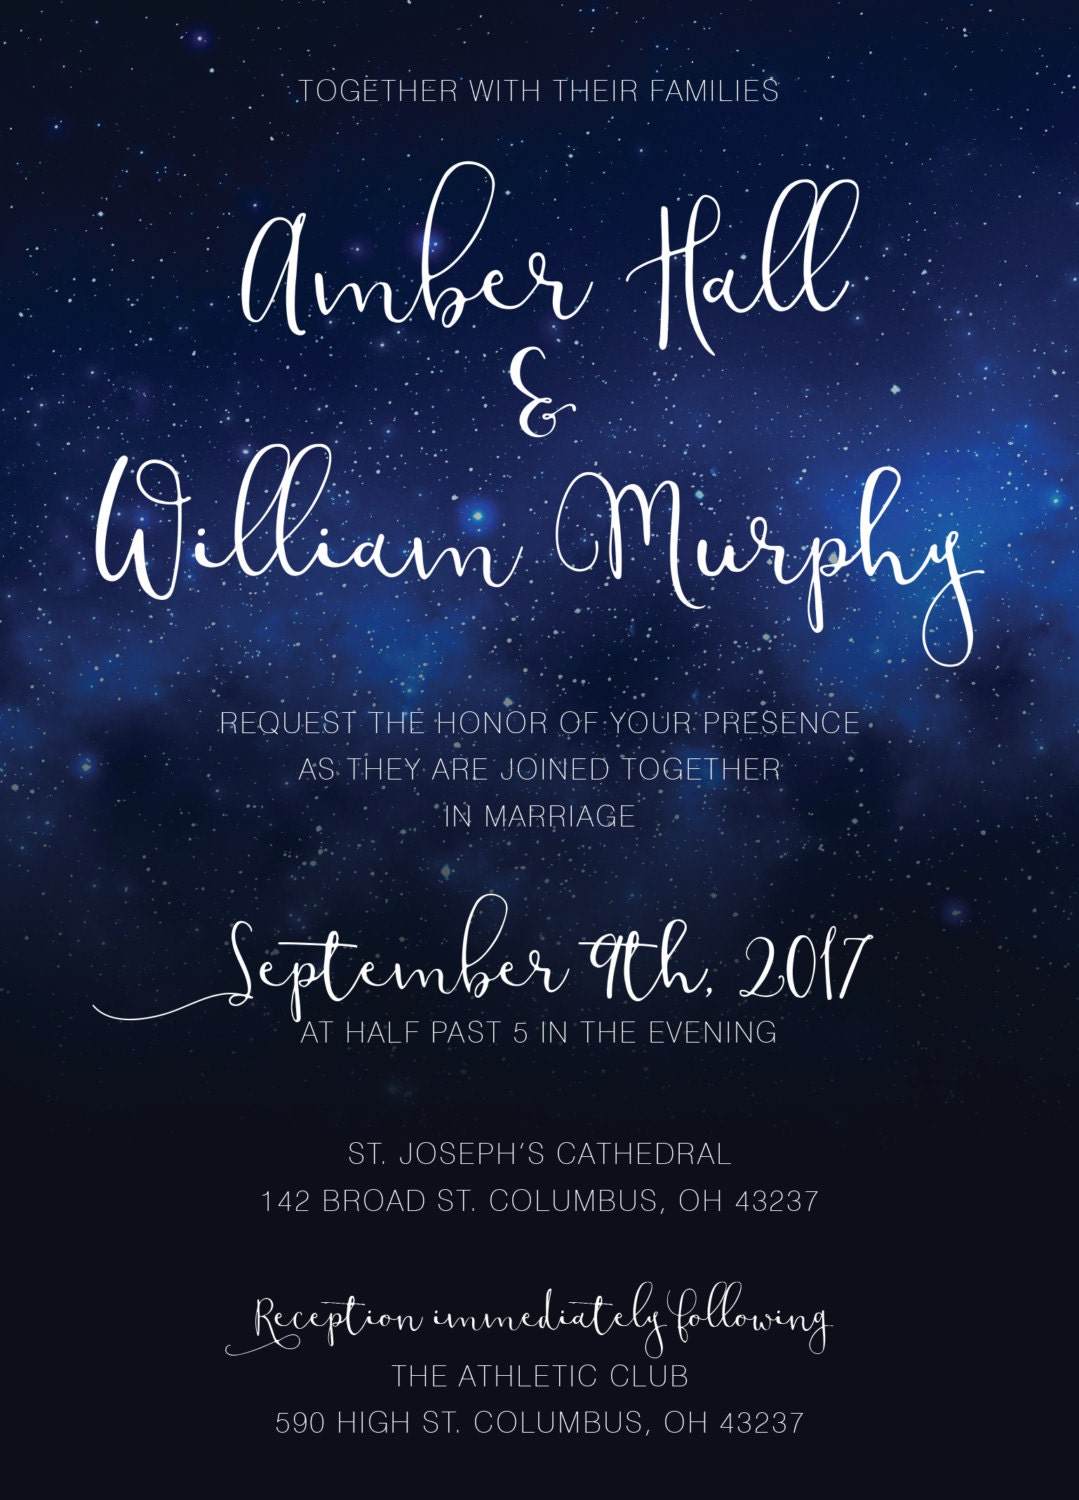 Stars Wedding Invitations Set Printed - Starry Night, Classy, Sky ...